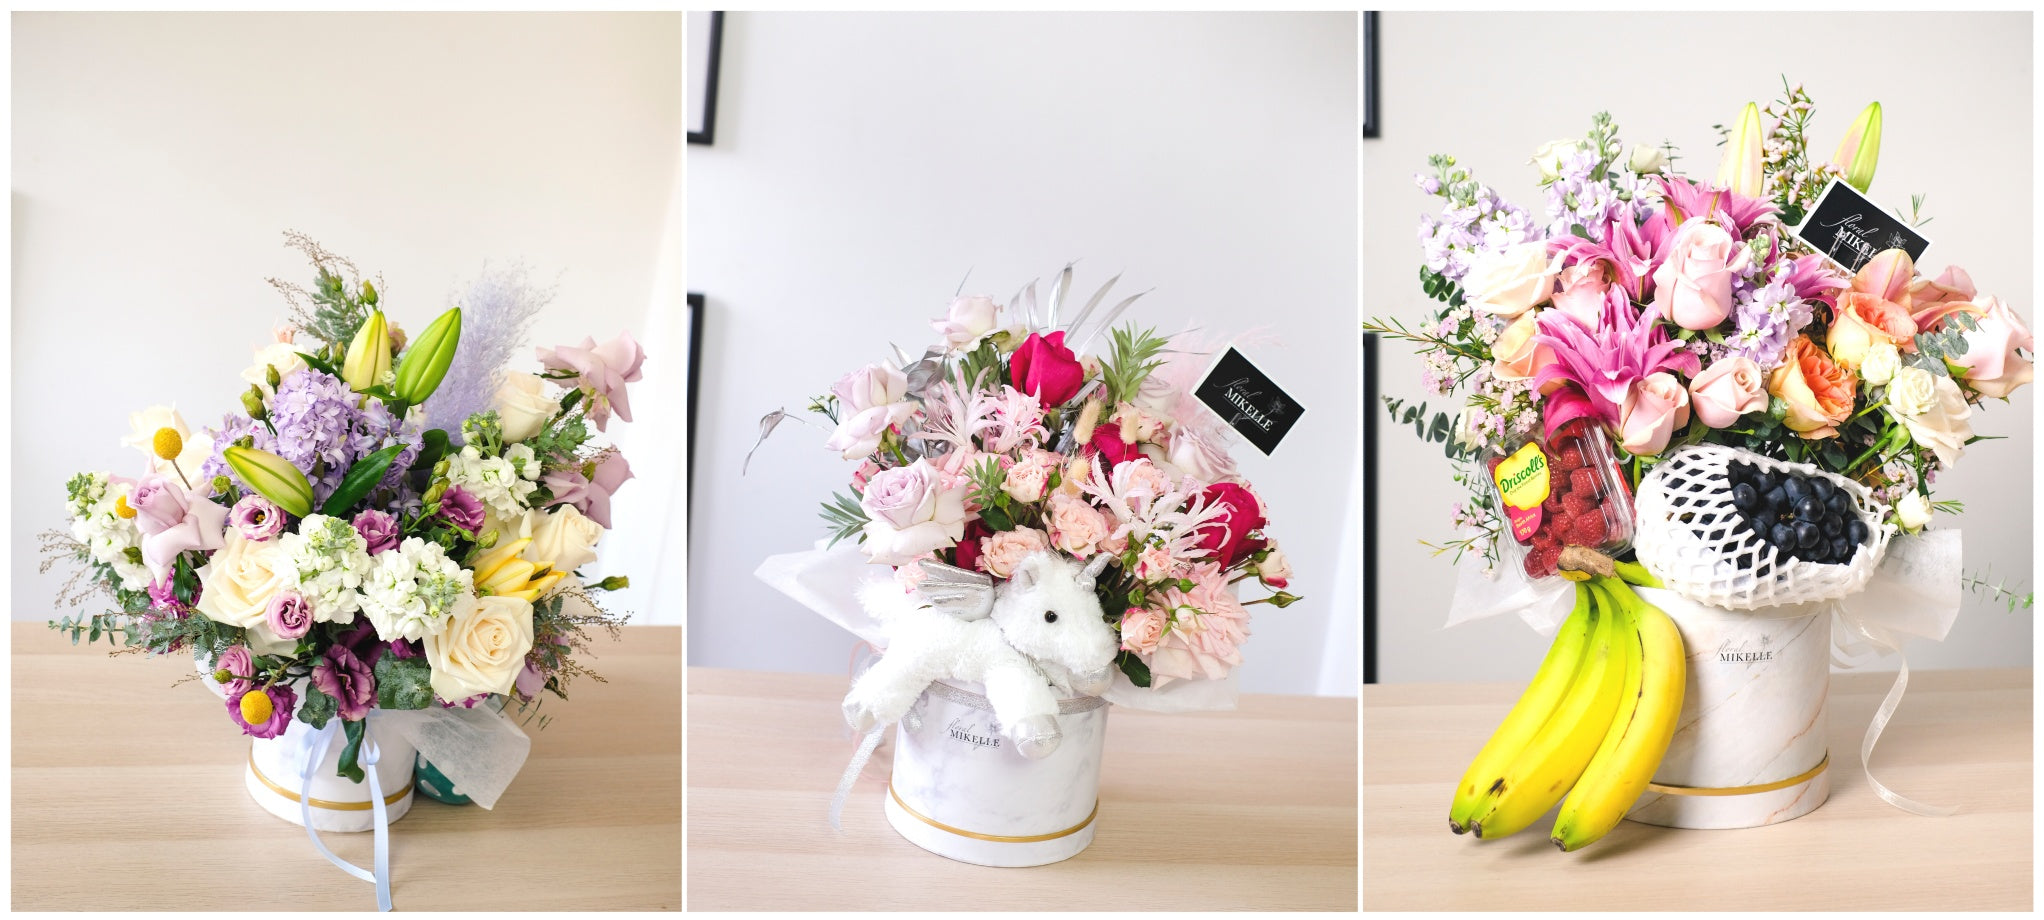 Flower gifting size guide for floral boxes with teddy bears and fruits by bespoke florist floral mikelle